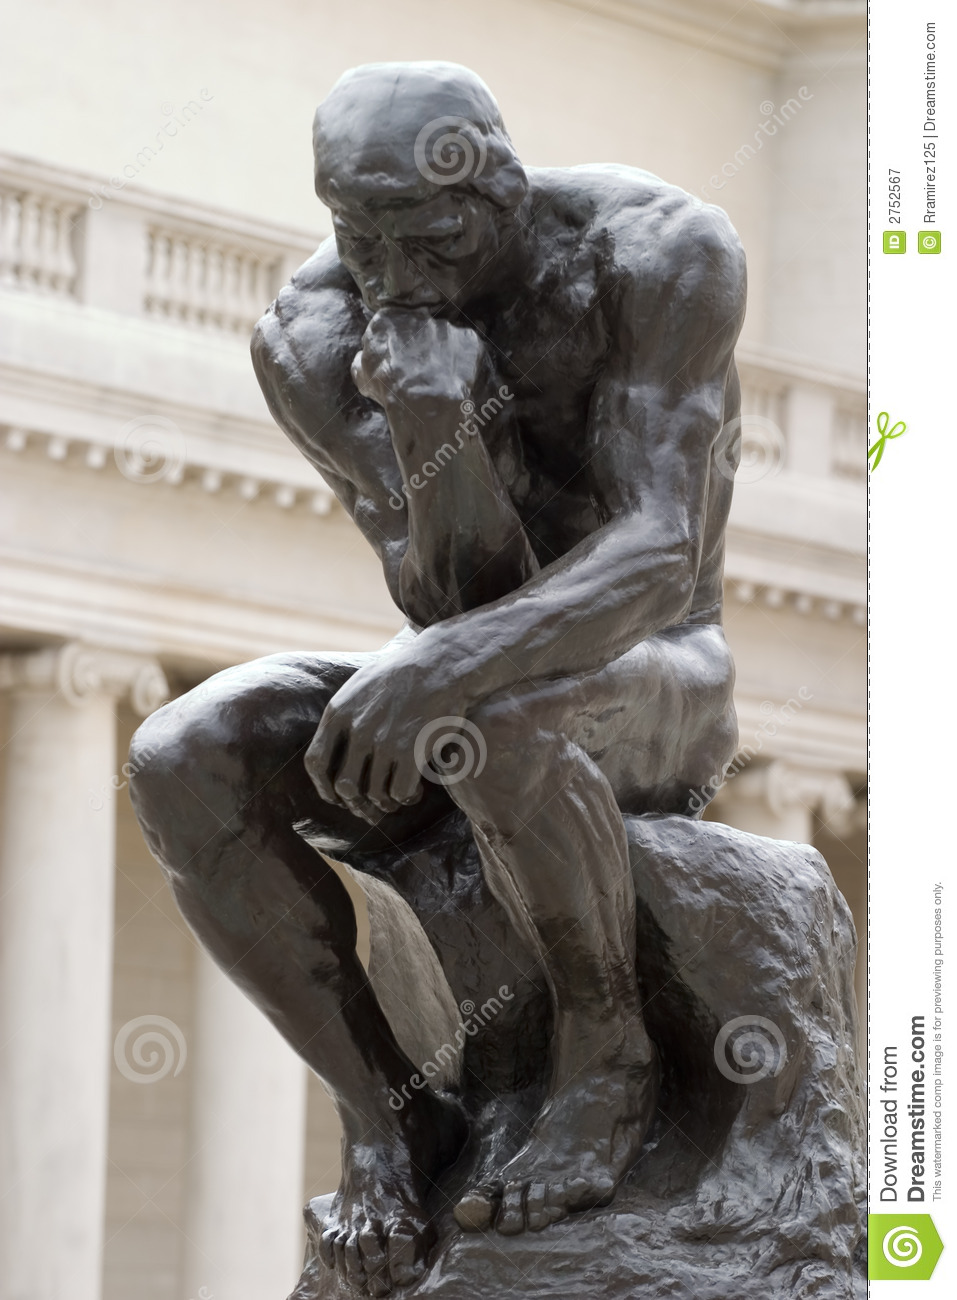 Rodin S Thinker Created By Auguste Rodin At The End Of The 18 Century